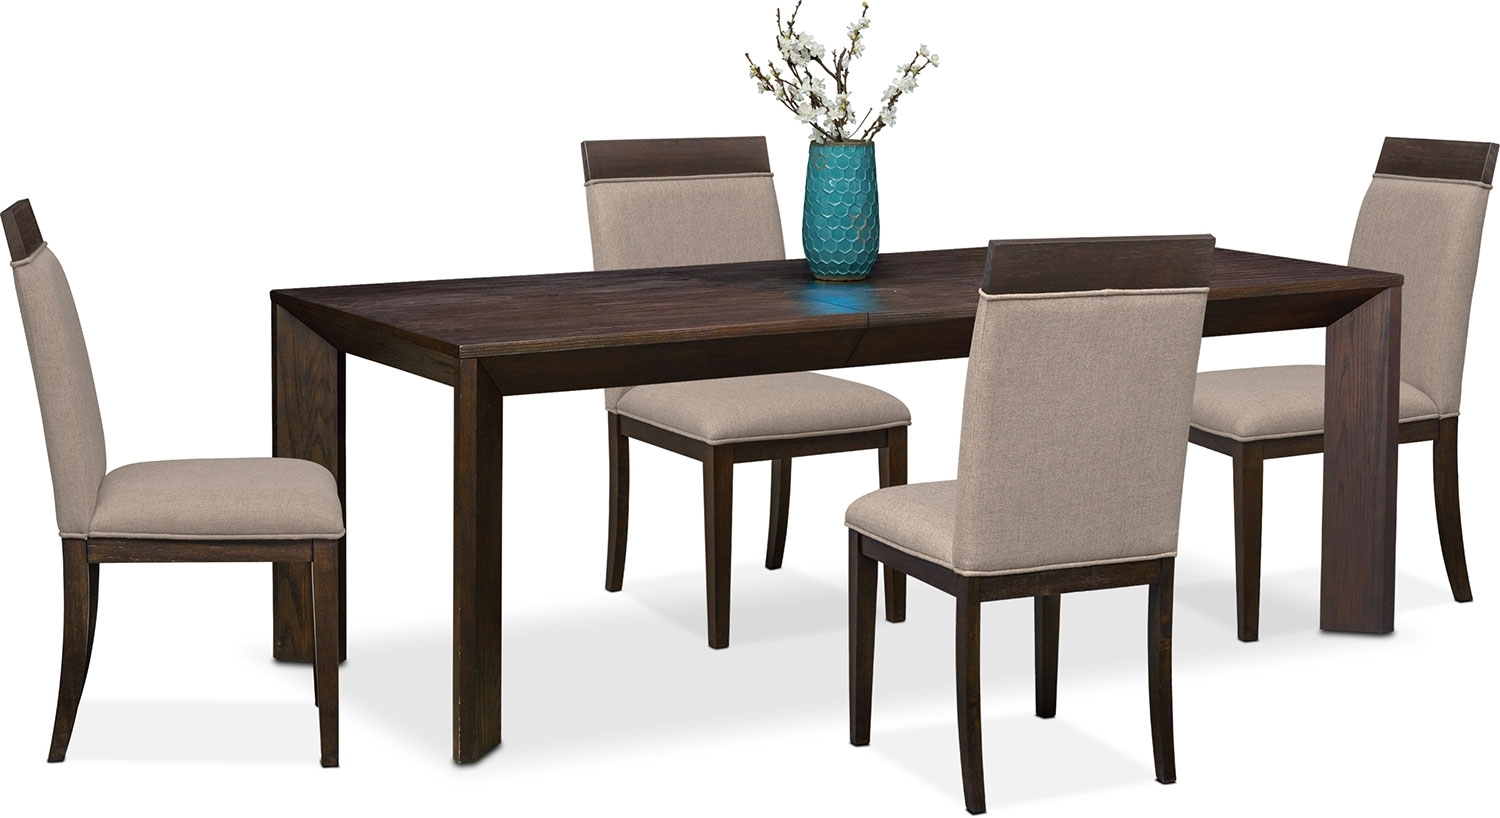 Gavin Table And 4 Side Chairs – Brownstone | Value City Furniture Throughout Latest Gavin 6 Piece Dining Sets With Clint Side Chairs (Photo 6 of 20)